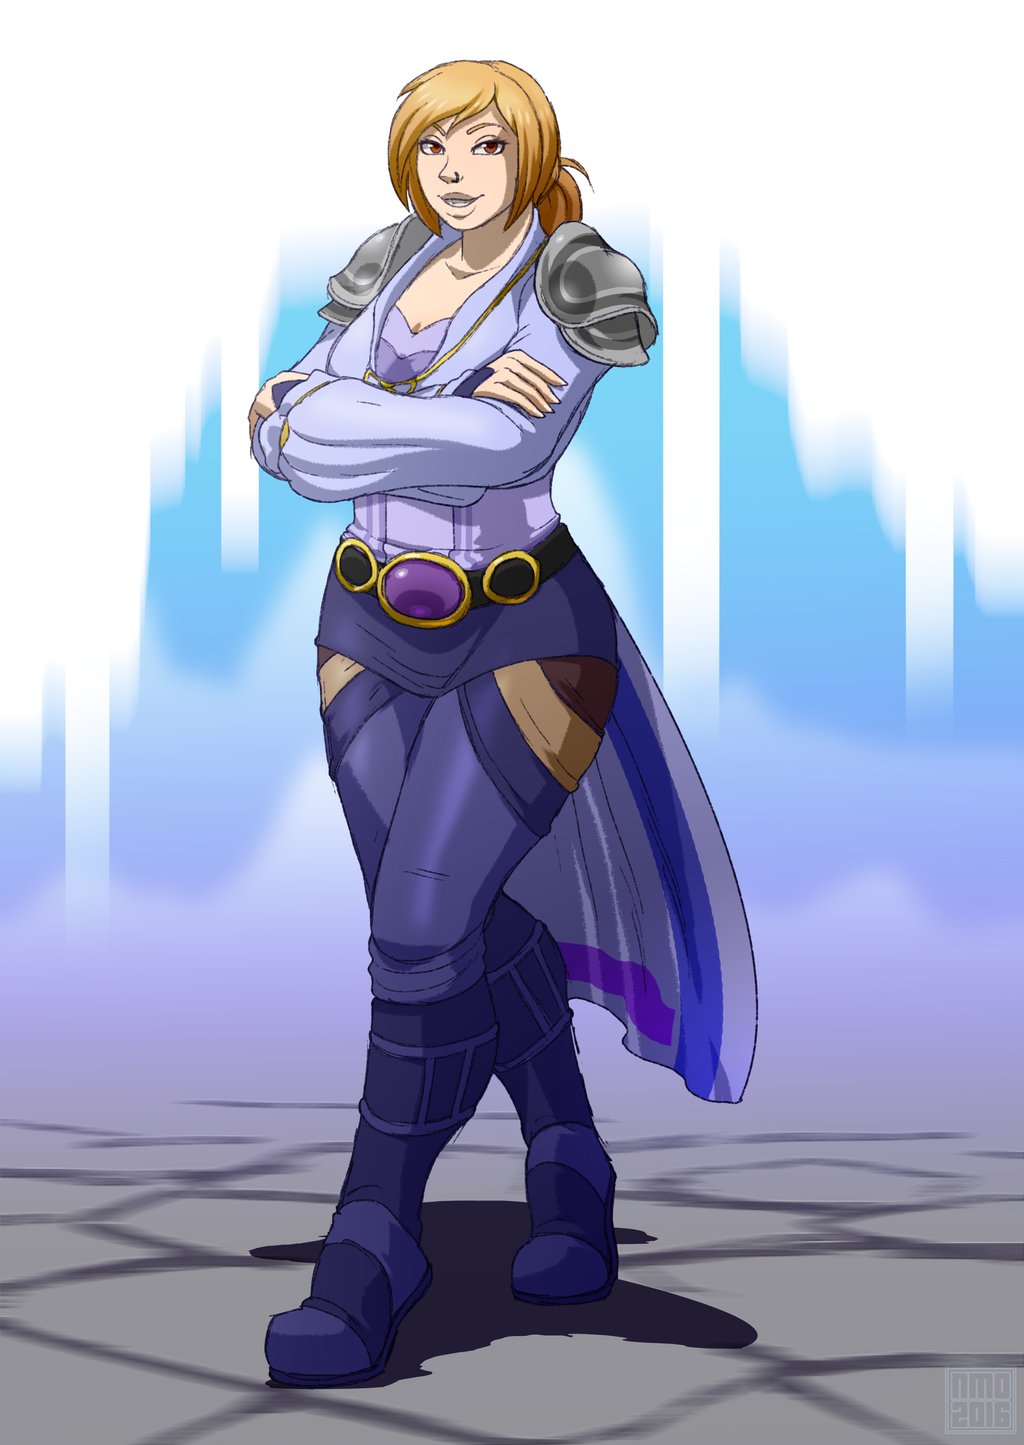 Most recent image: Mage of the Kirin Tor